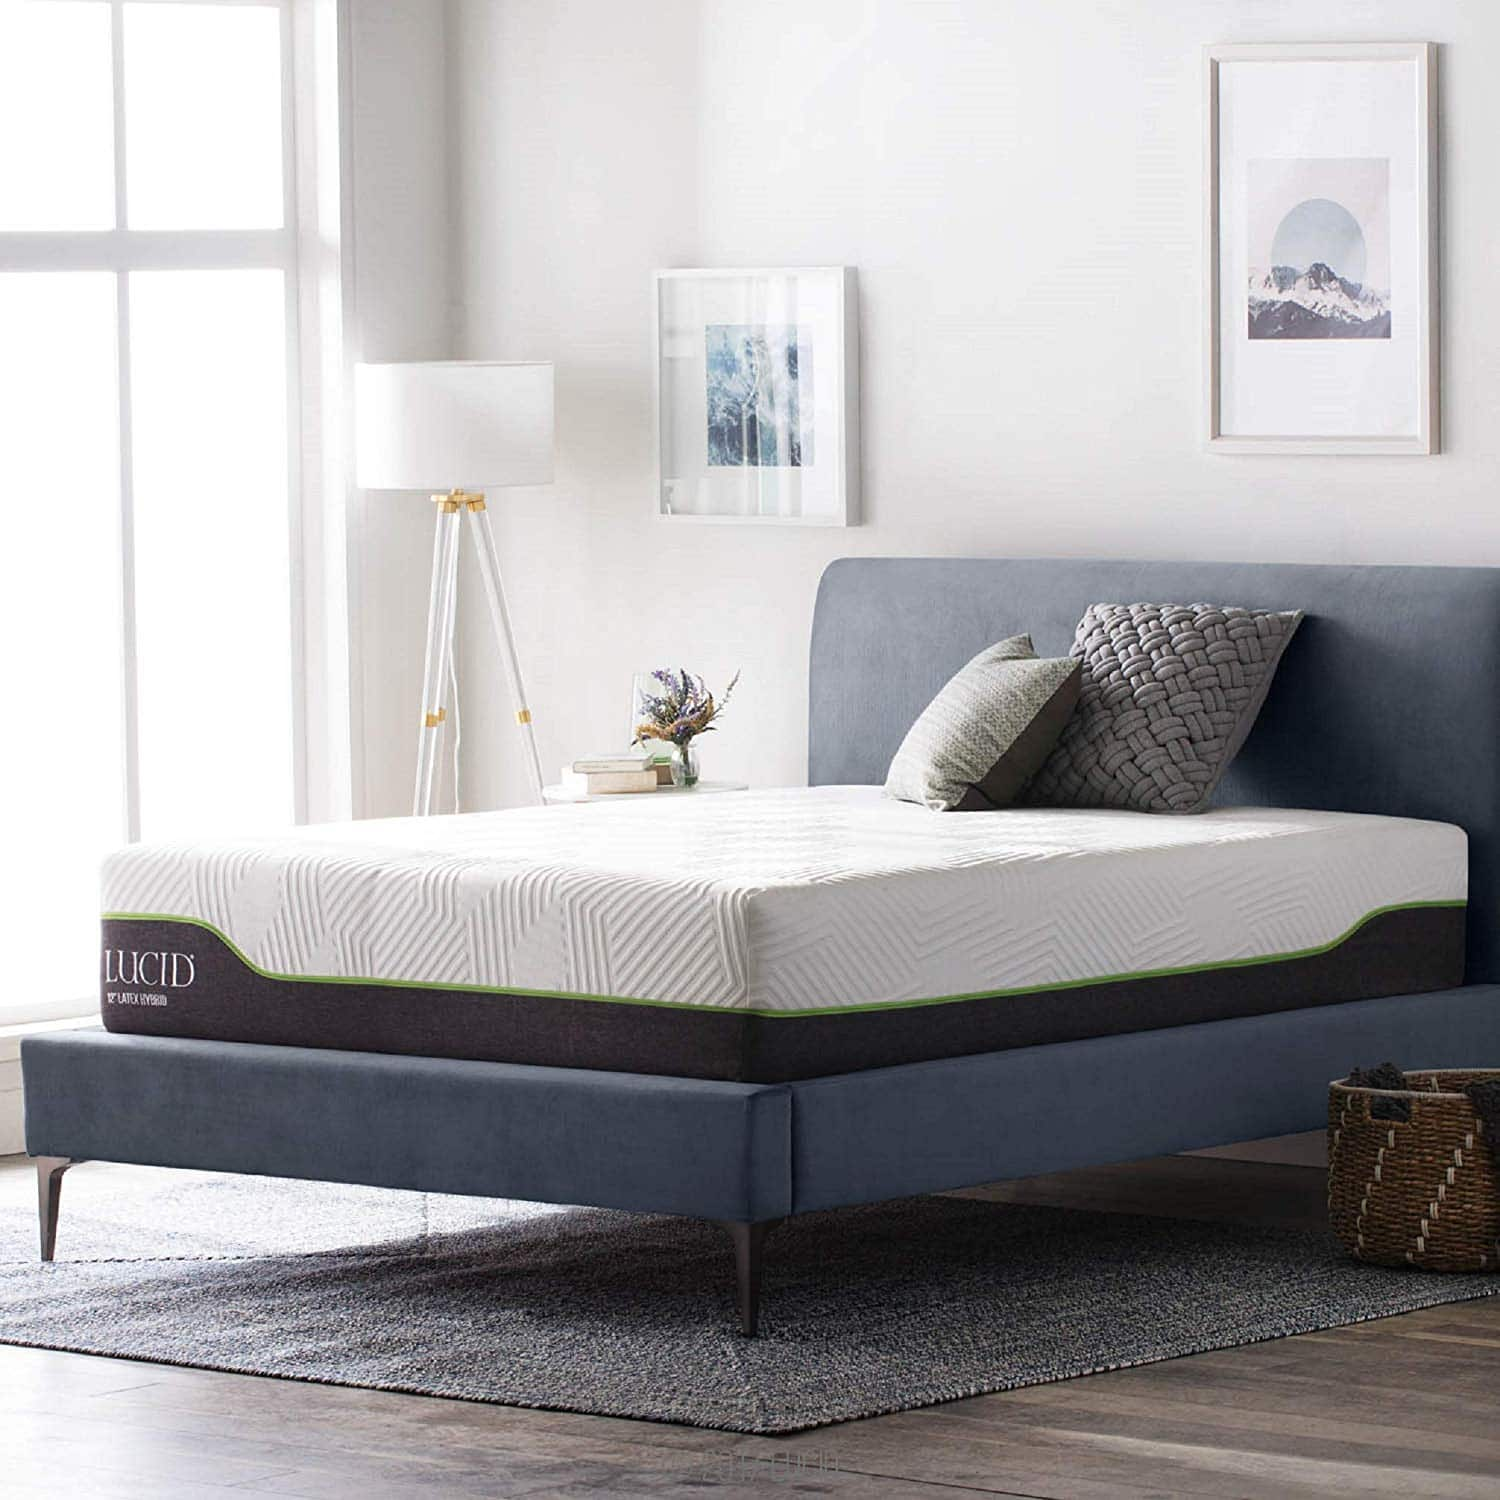 Lucid 12 Inch Full Latex Hybrid Mattress